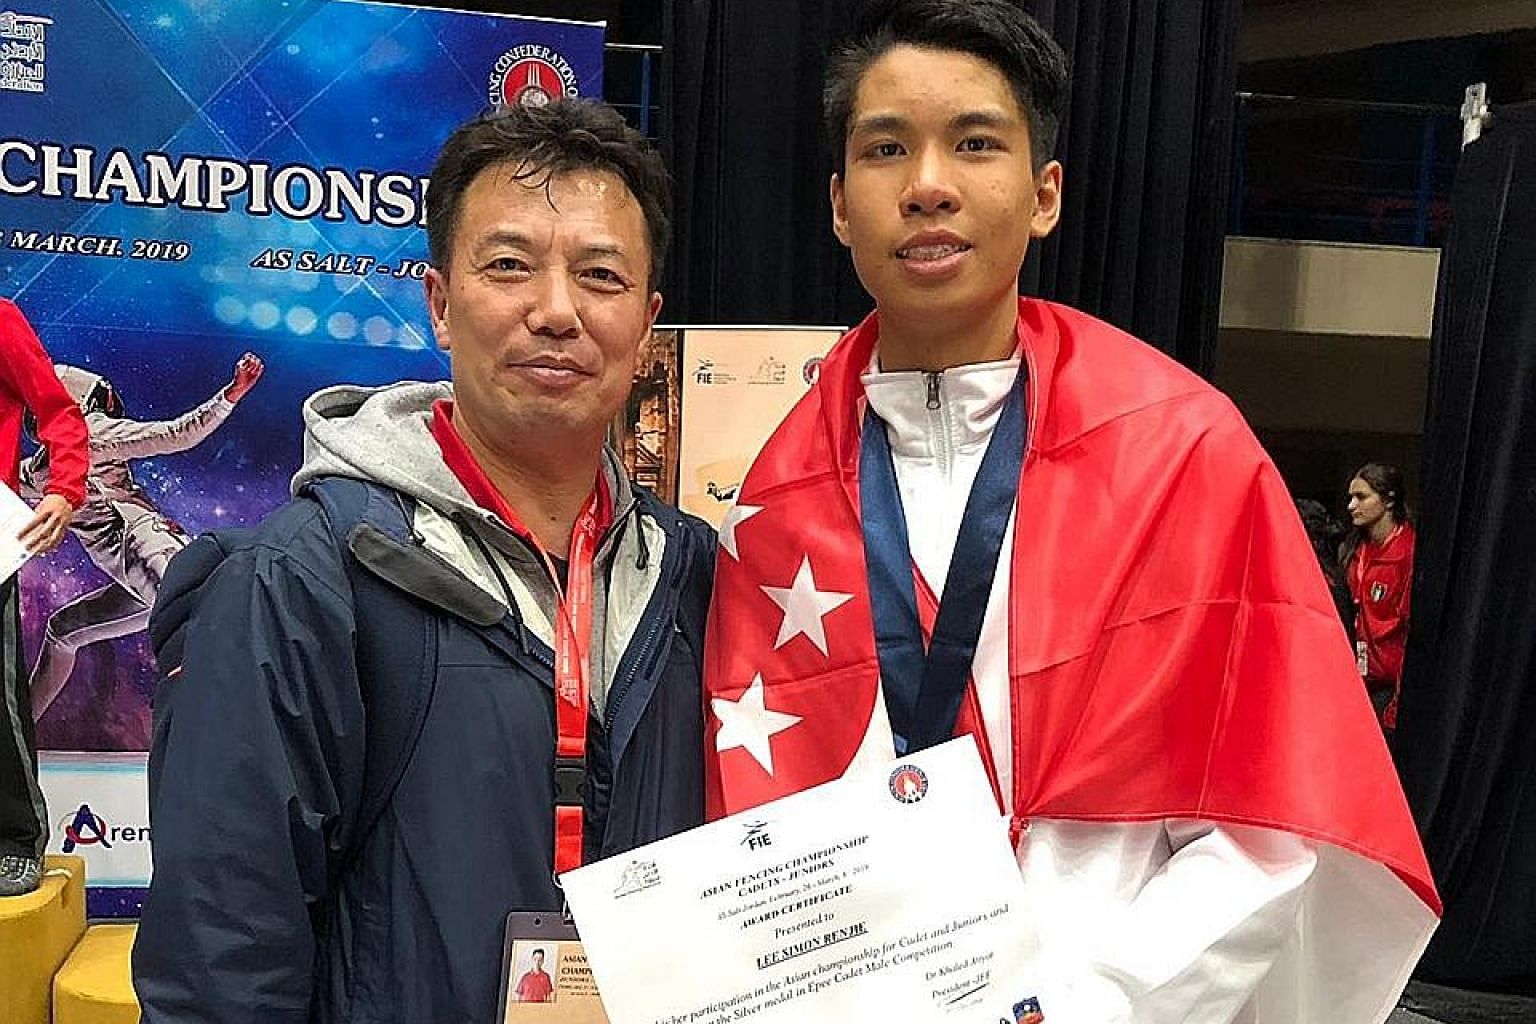 Simon Lee with coach Shim Jae-sung after a superb run to the final, in which he lost to Japanese ninth seed Ryu Matsumoto. The 16-year-old fencer had upset three top-10 seeds in the earlier rounds.